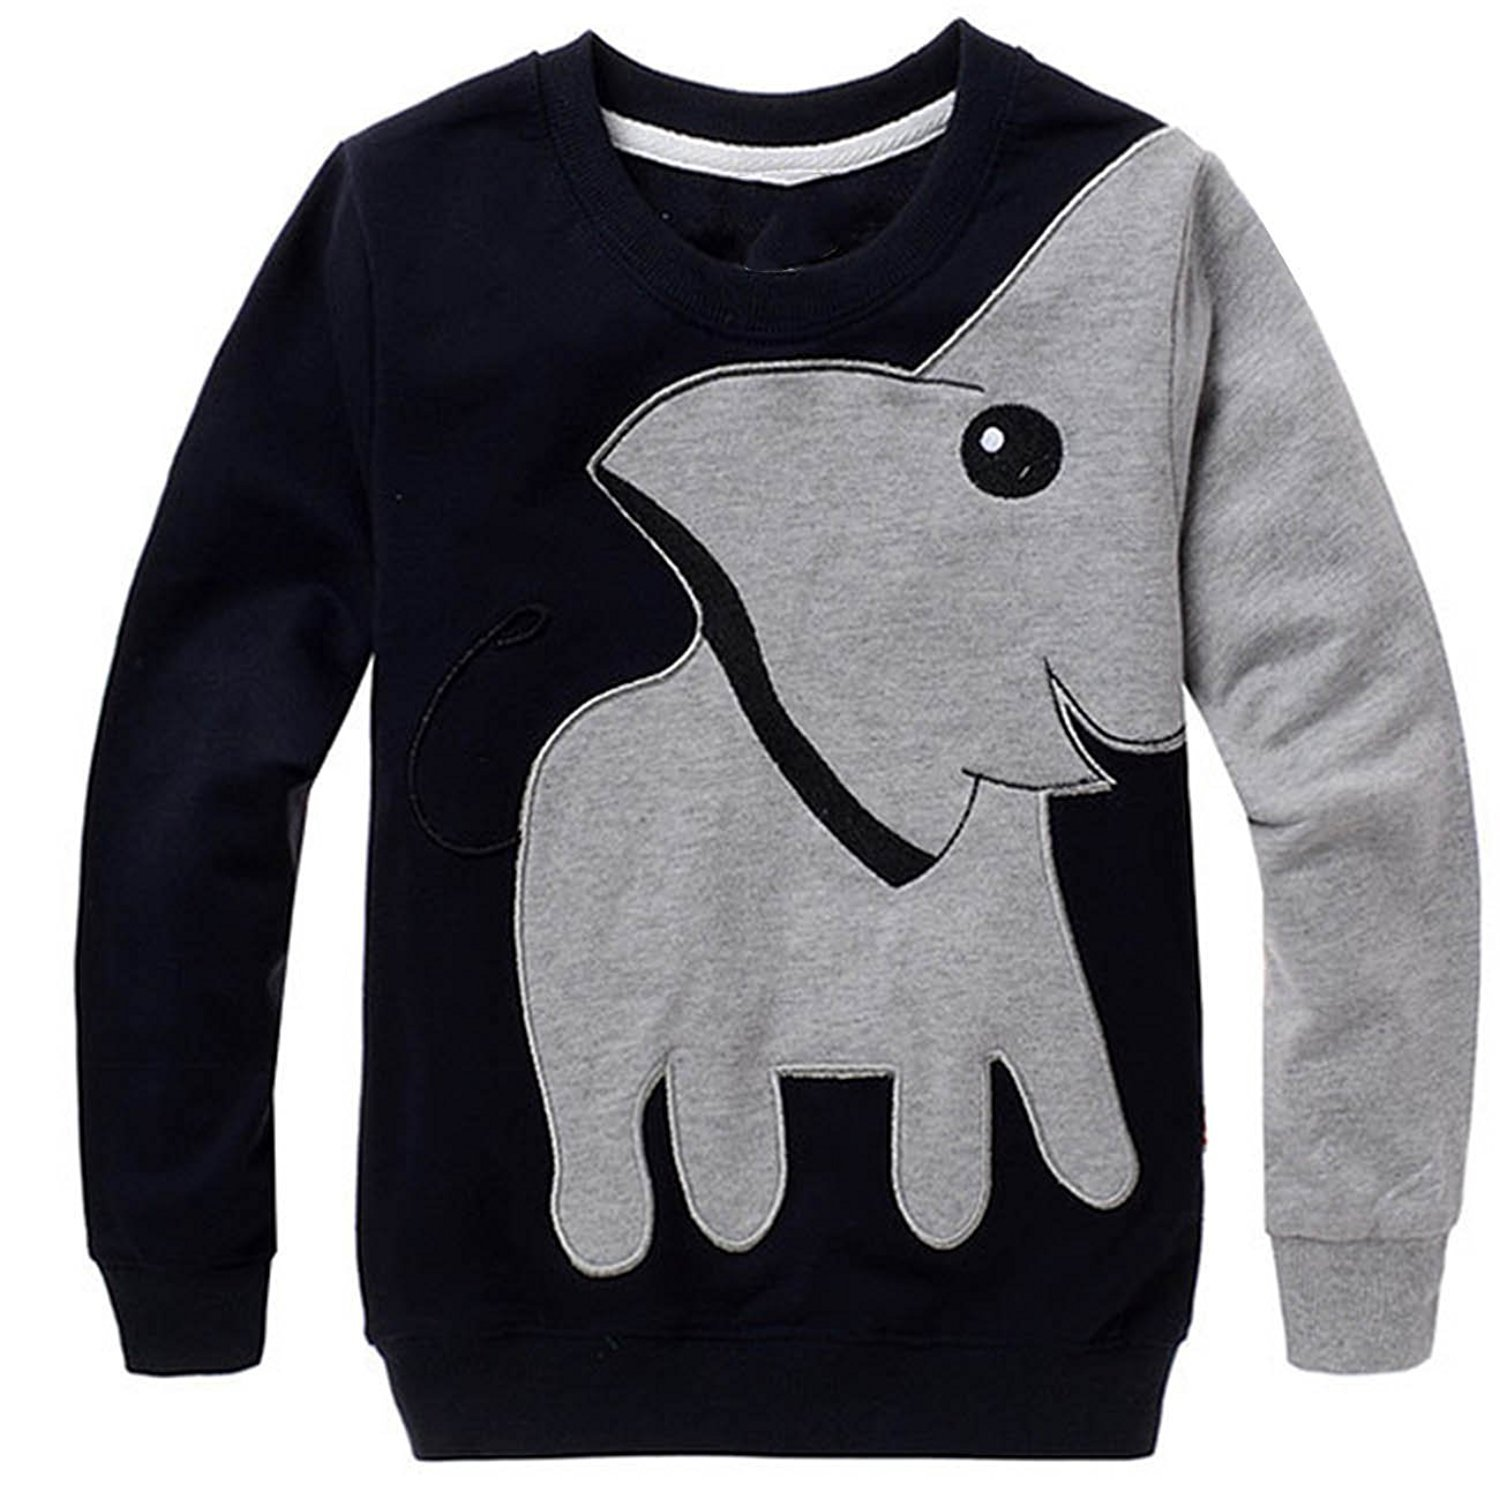 OFIN Little Boys Jumpers Kids Elephant Sweaters Sweatshirt Pullover Casual Tops